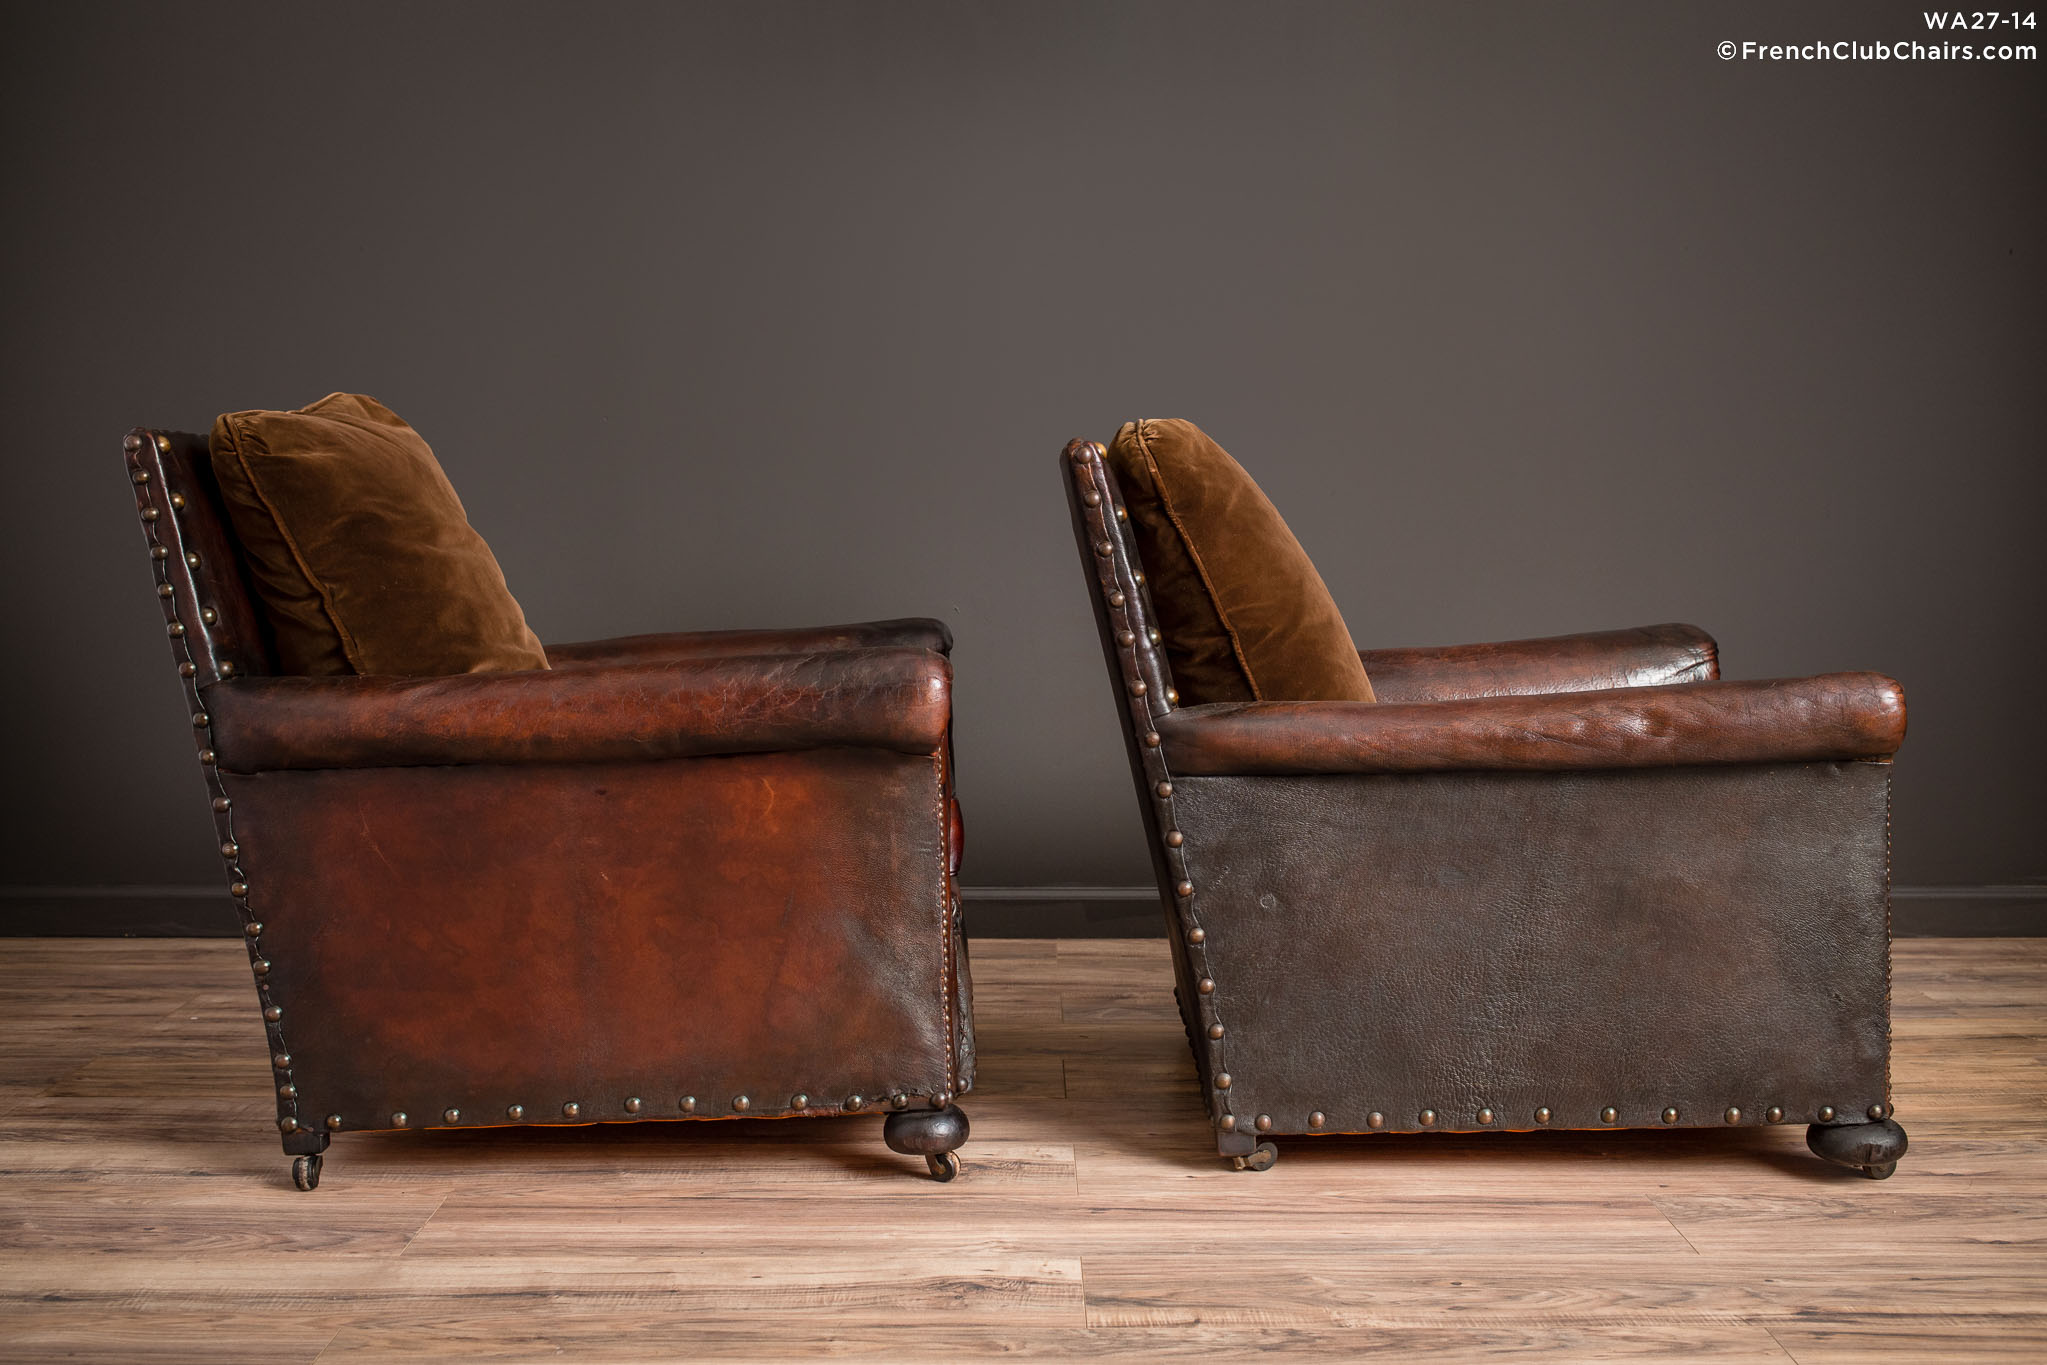 WA_27-14_Ile_de_St_Louis_Nailed_Square_Pair_R_3RT-v01-williams-antiks-leather-french-club-chair-wa_fcccom